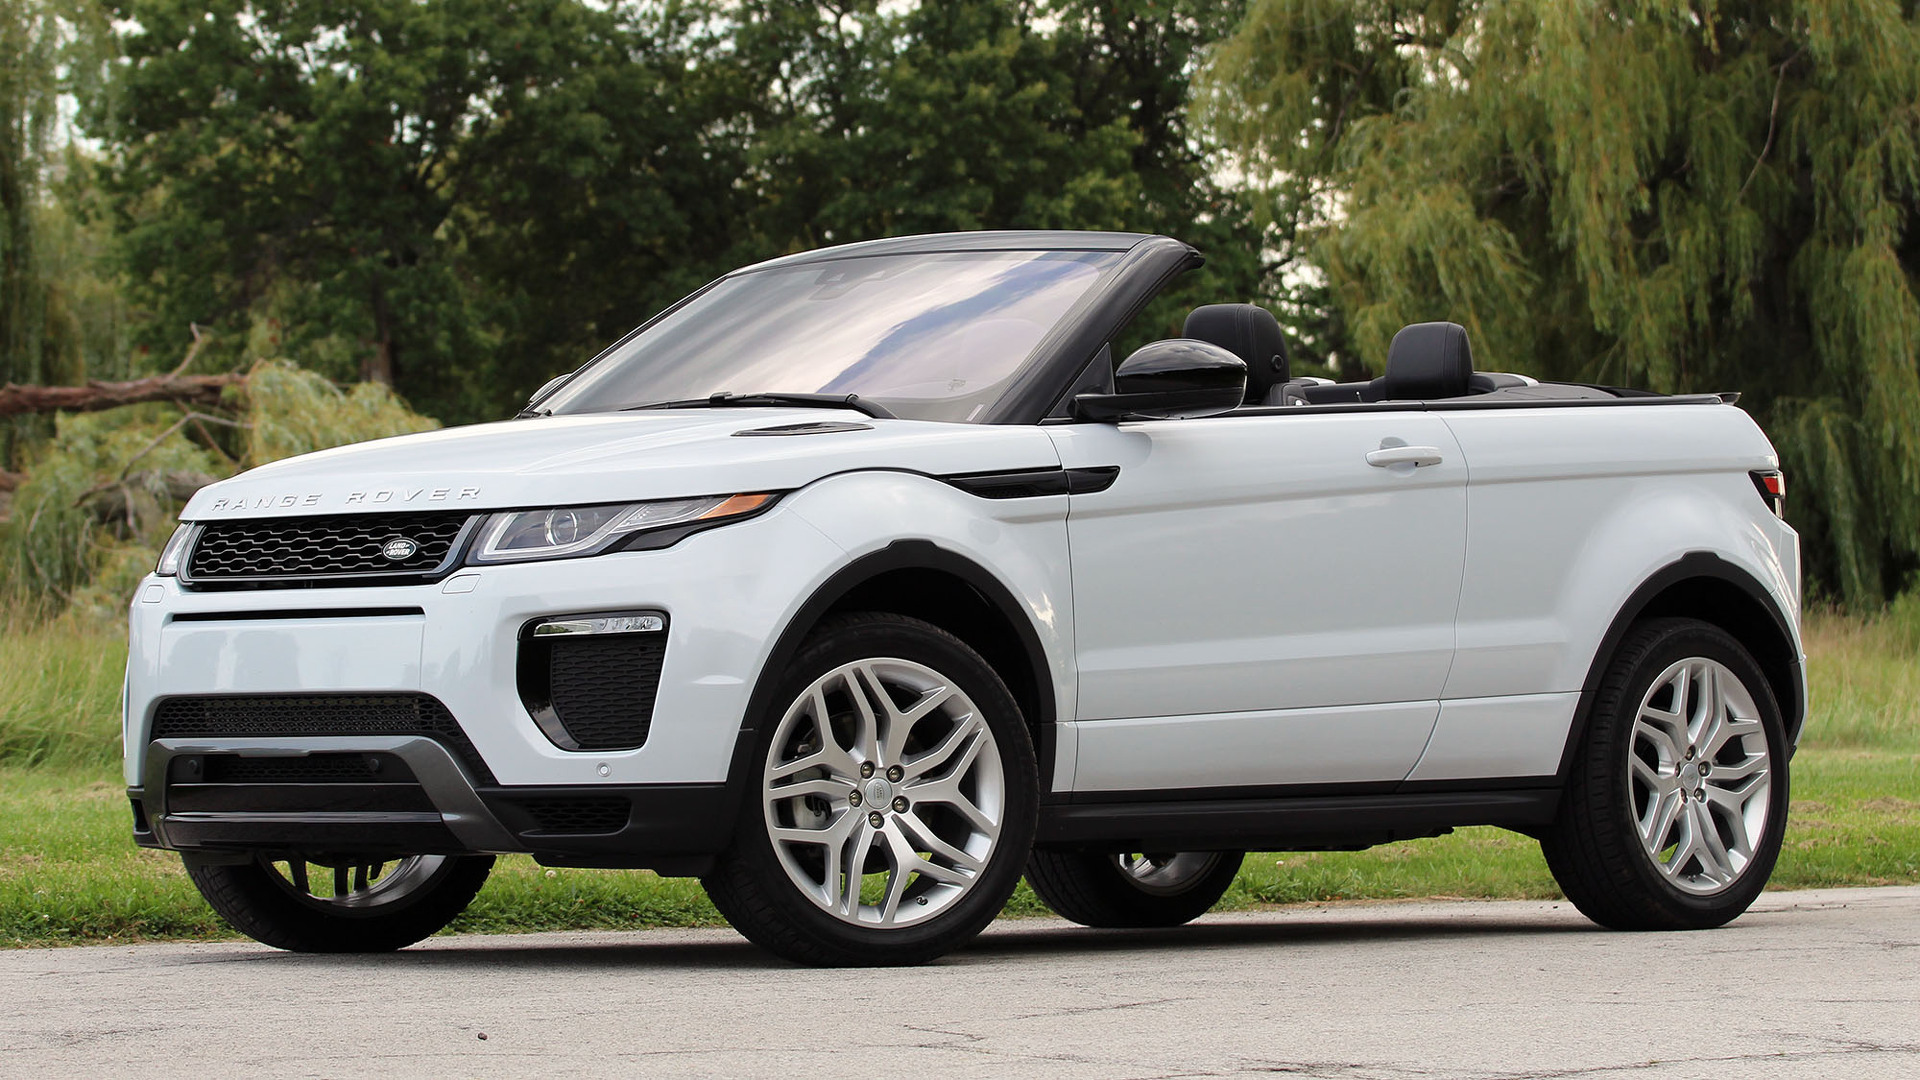 Range Rover Evoque Goes Against The Mother Of All Sd Bumps